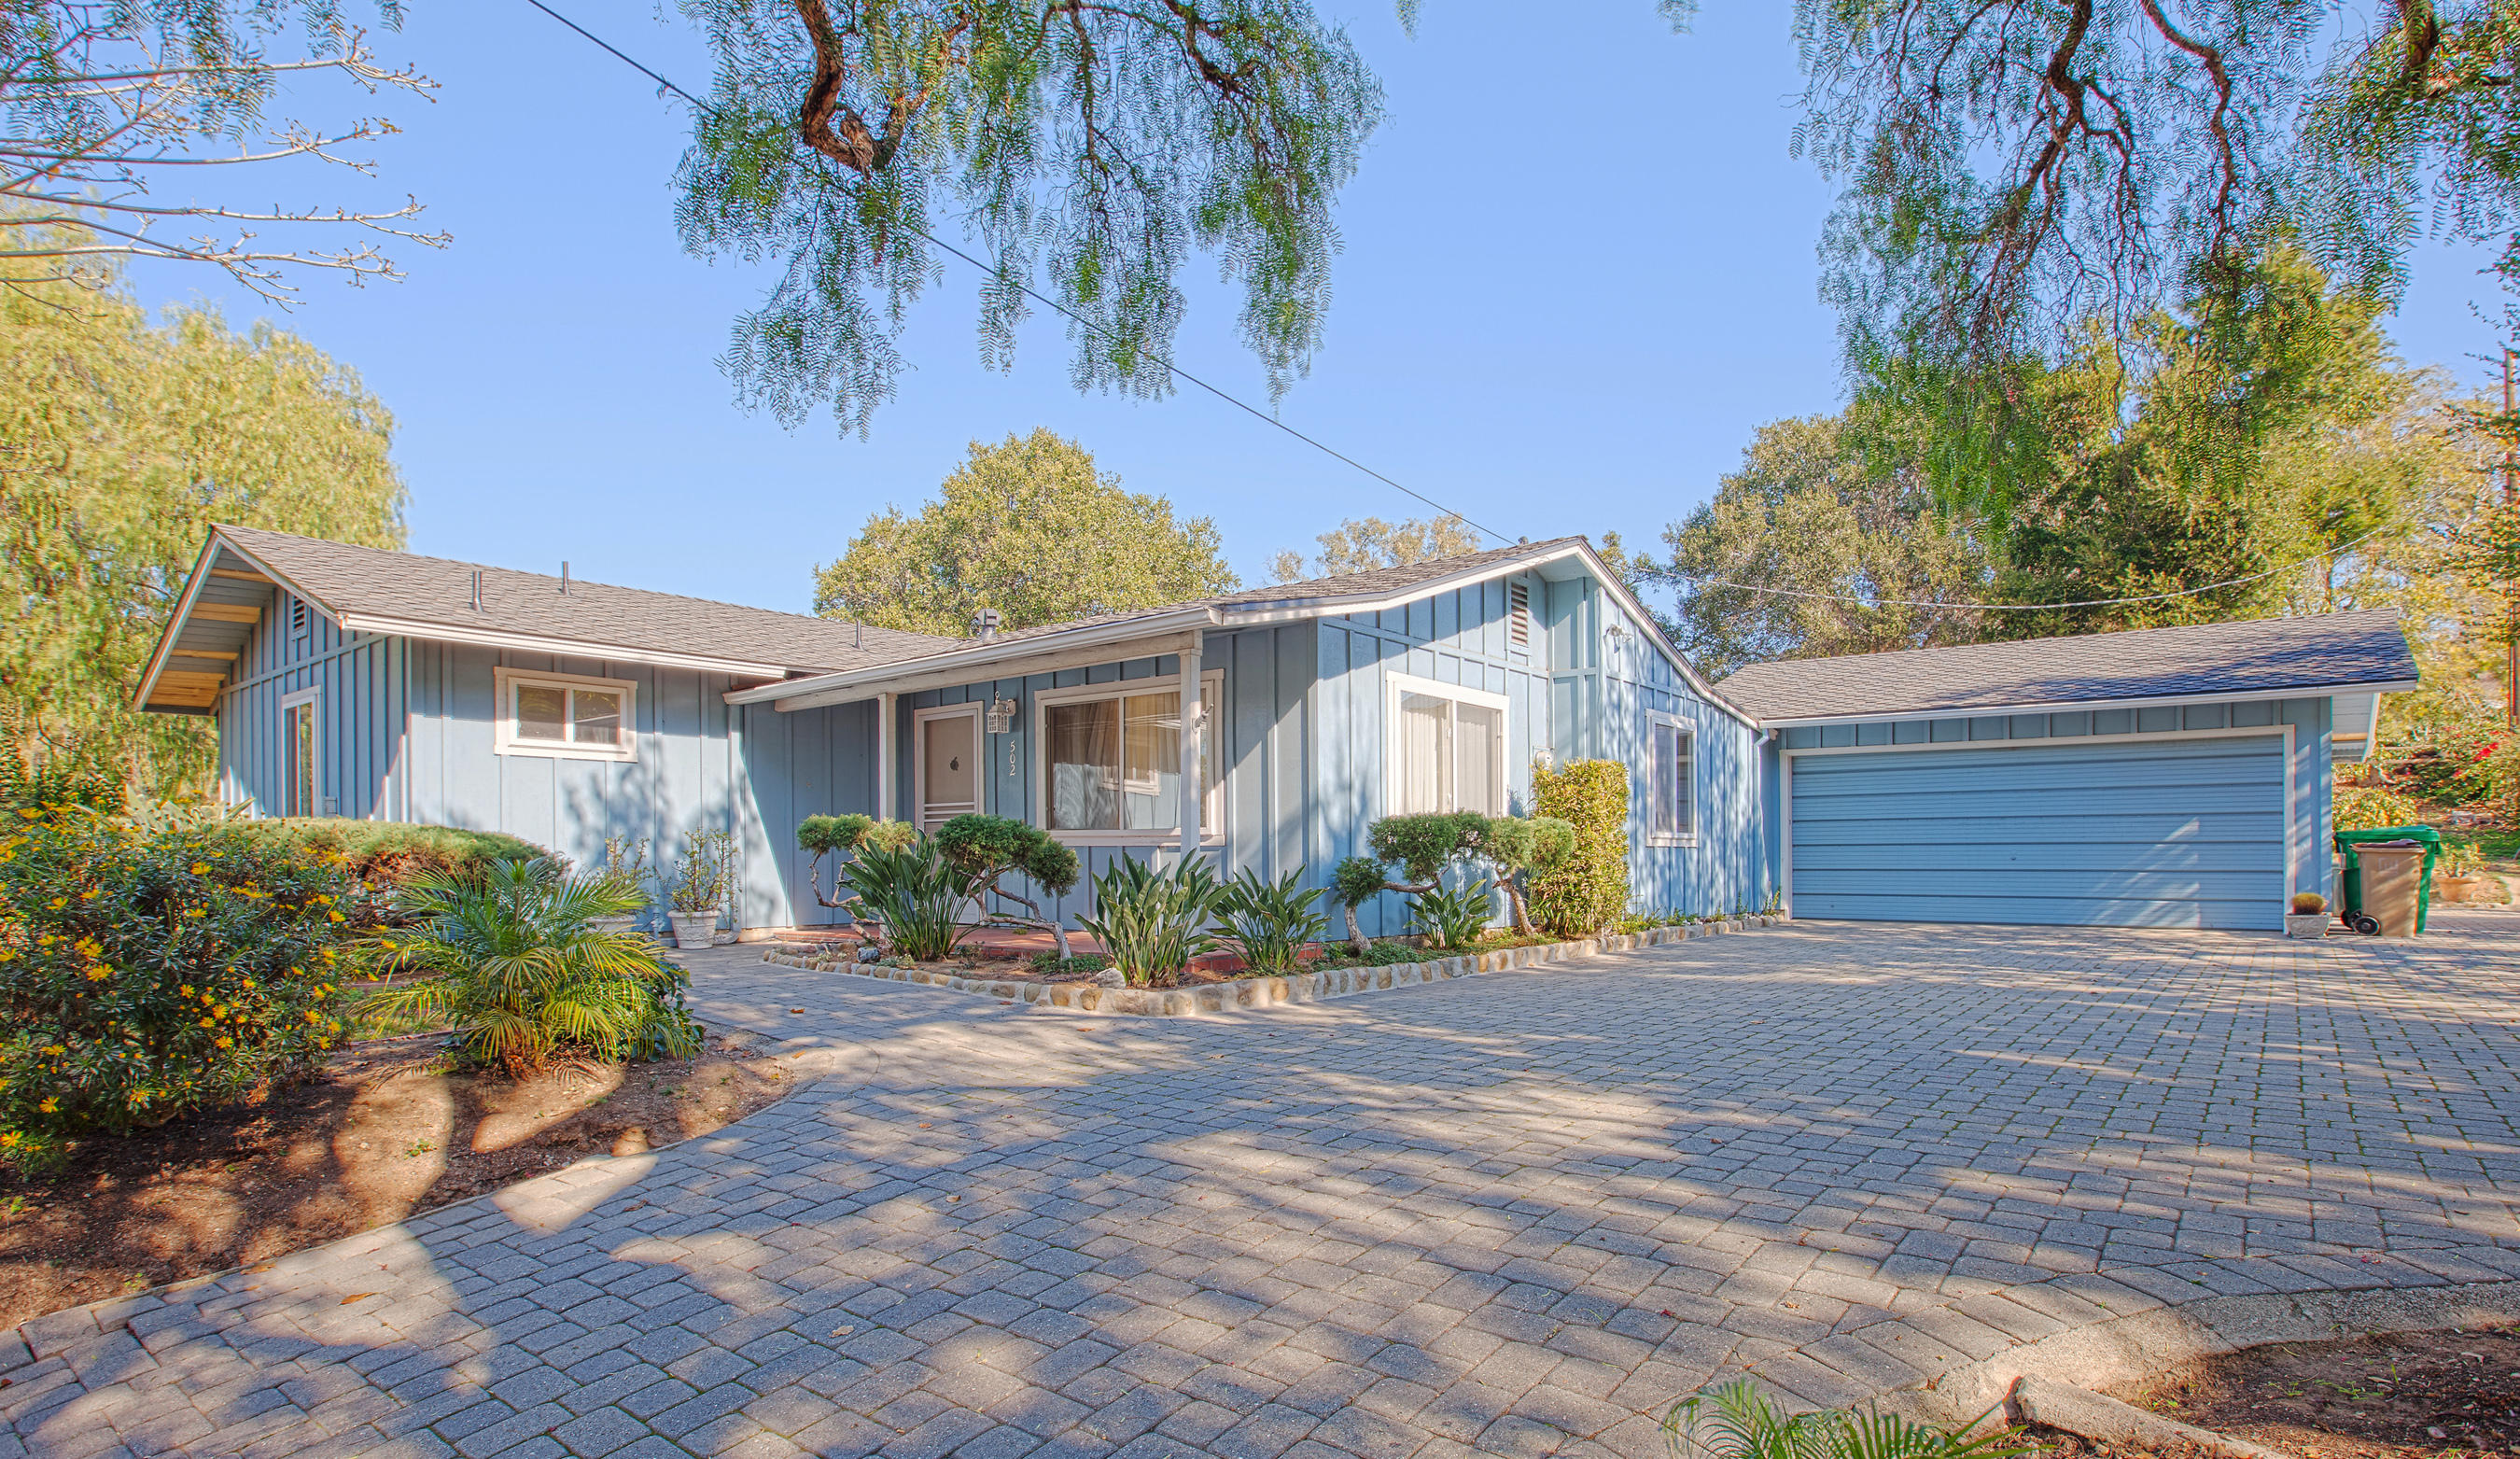 Property photo for 502 N Turnpike Rd Santa Barbara, California 93111 - 18-424